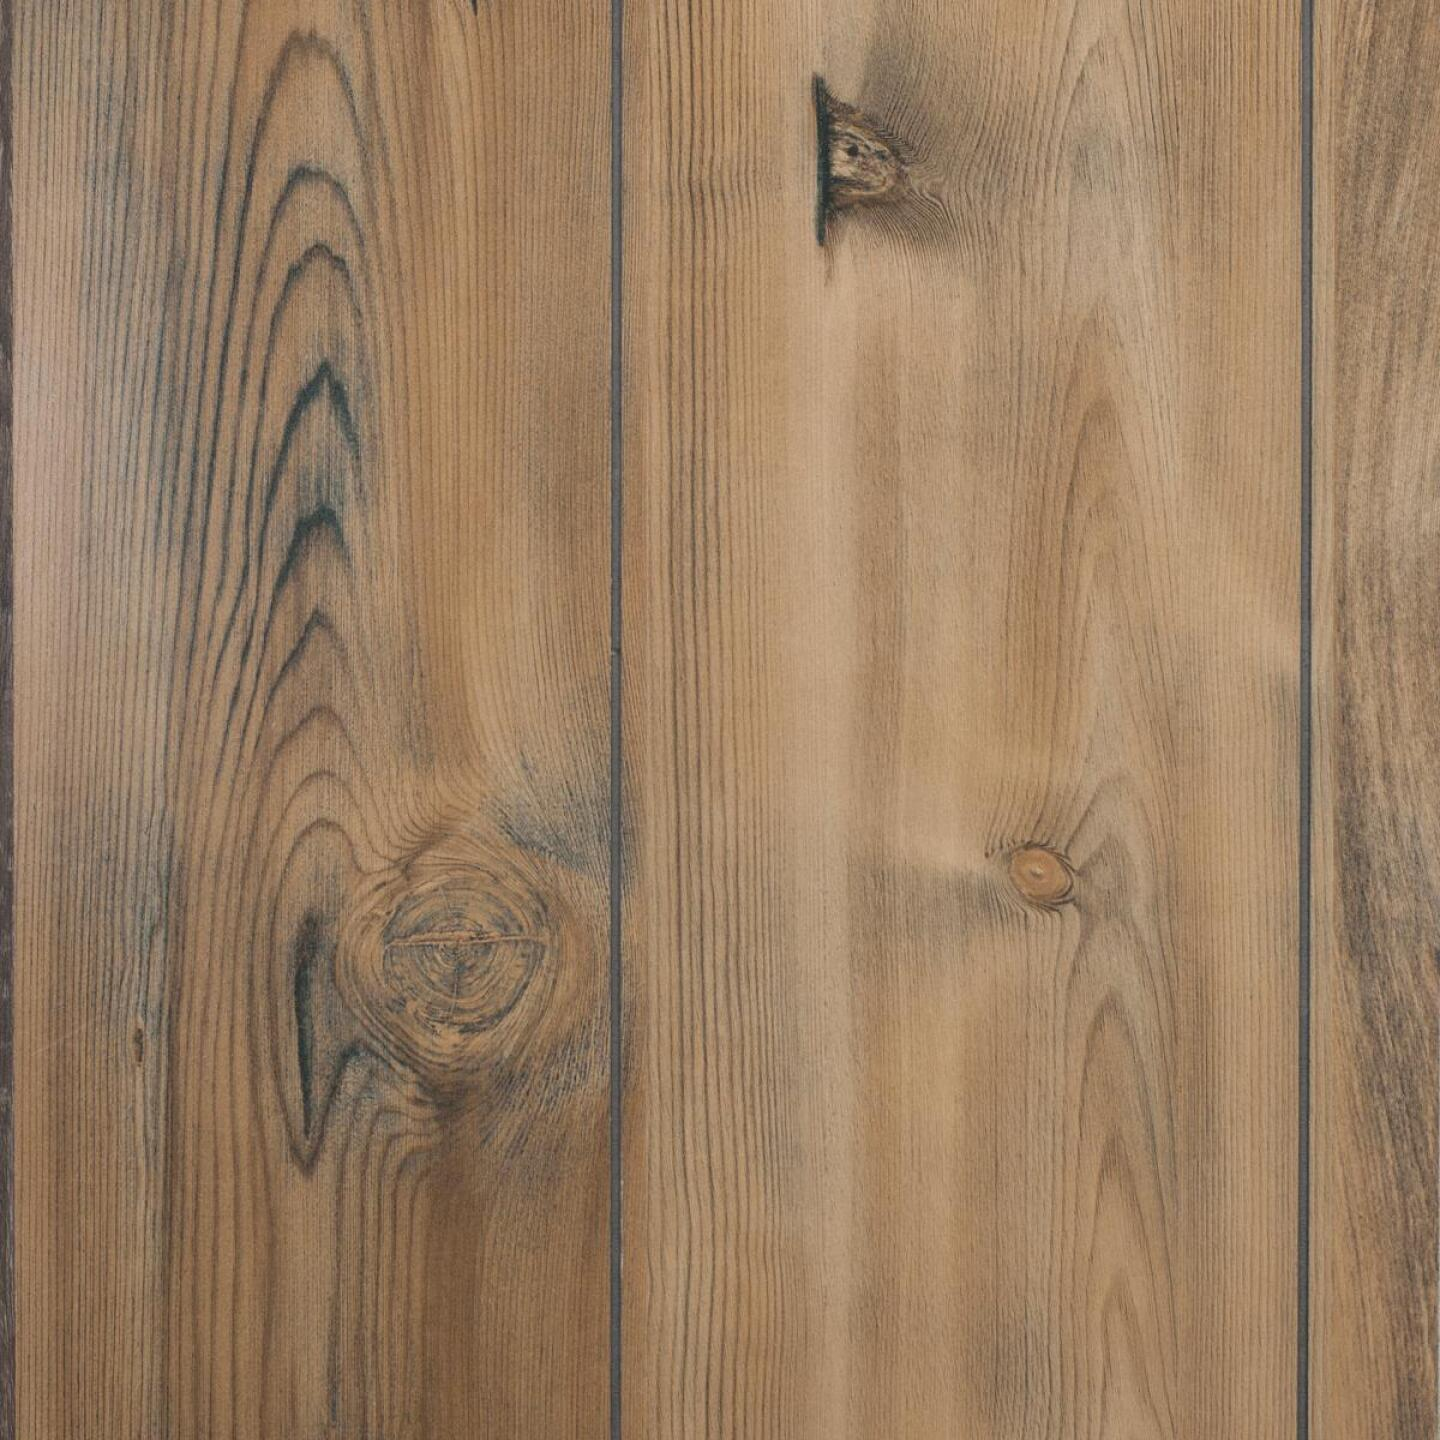 Global Product Sourcing 4 Ft. x 8 Ft. x 1/4 In. Blue Bayou Random Groove Profile Wall Paneling Image 1